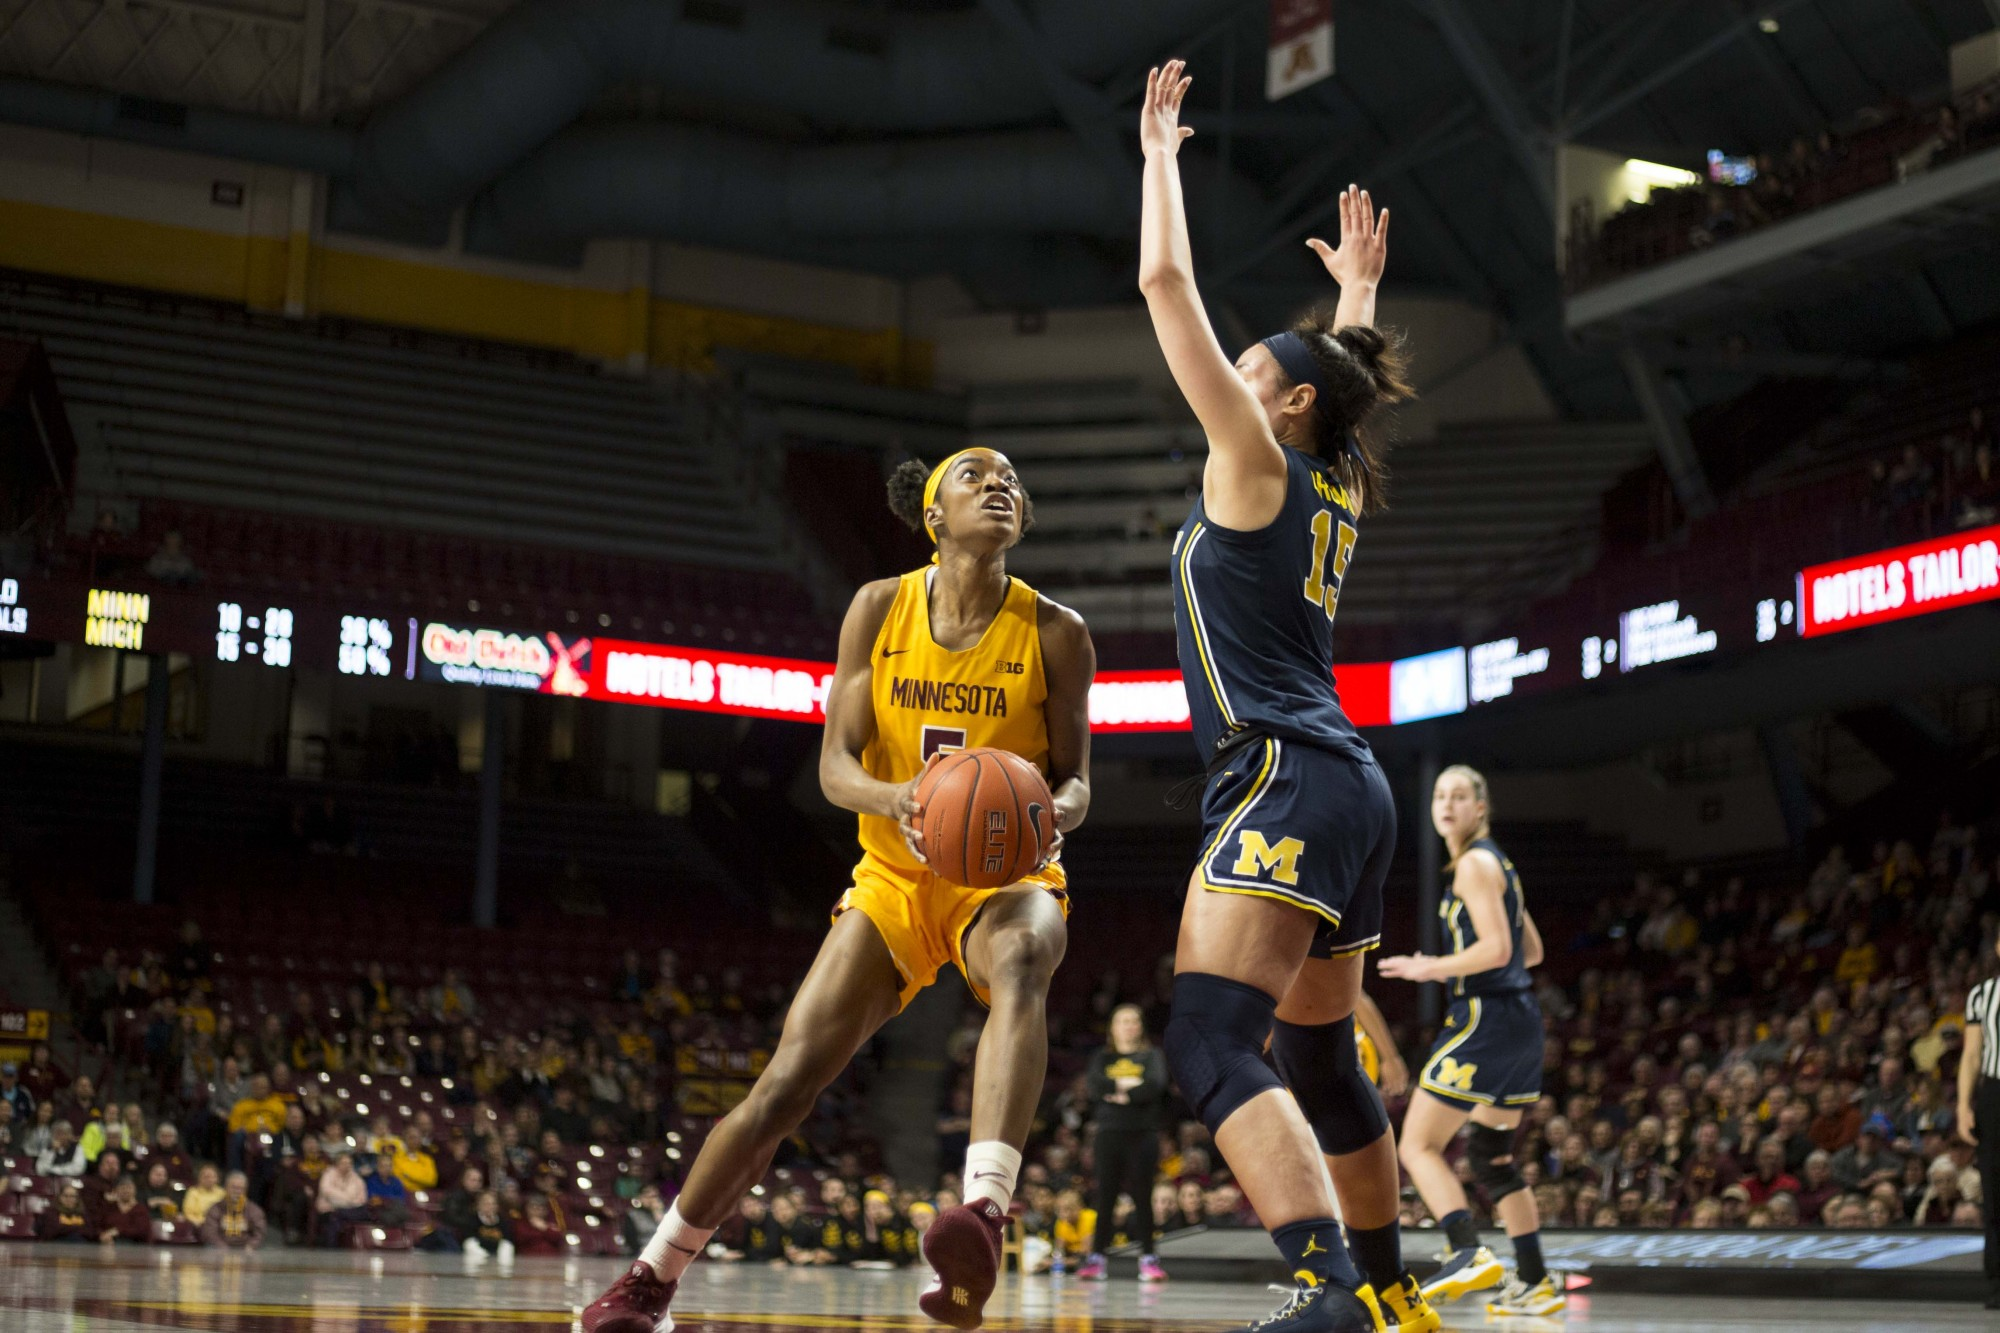 Gopher forward Taiye Bello squares up for a basket in William's Arena on Sunday, Feb. 10. The Gophers suffered a defeat against Michigan 52-77.